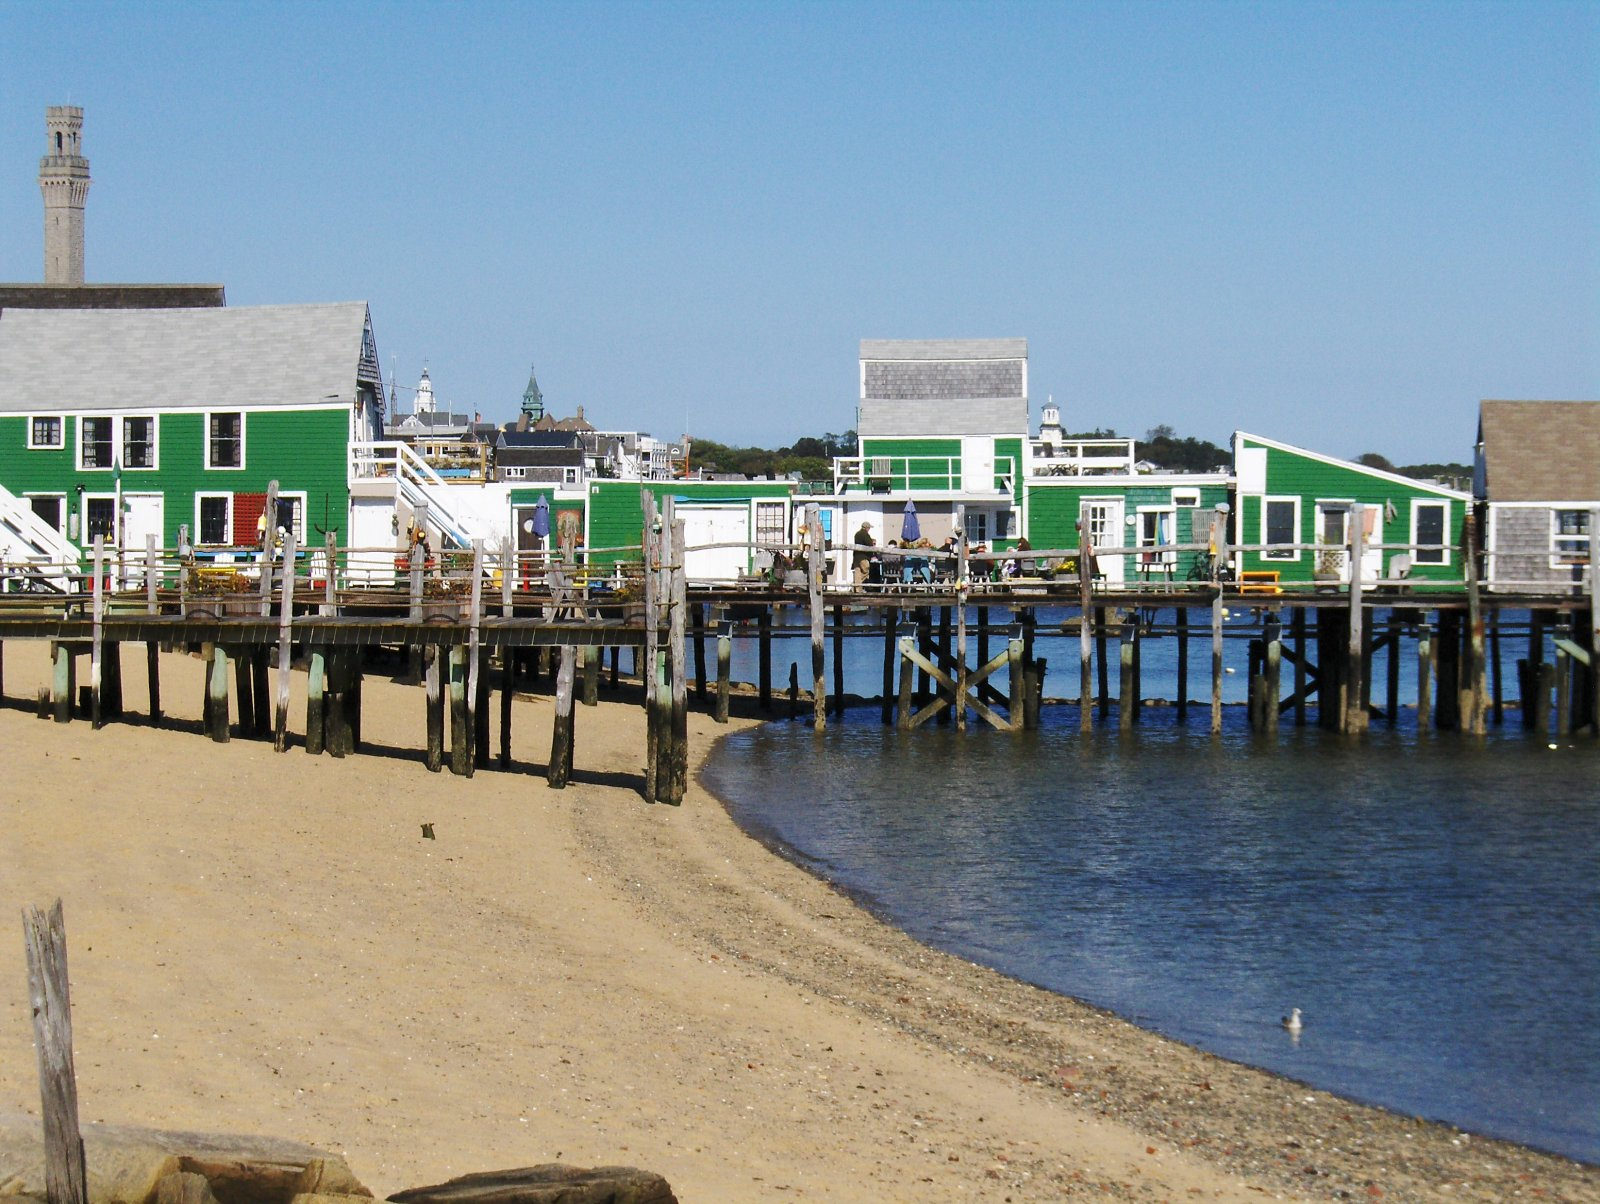 Click image for larger version  Name:PTown 086.jpg Views:90 Size:363.5 KB ID:88927